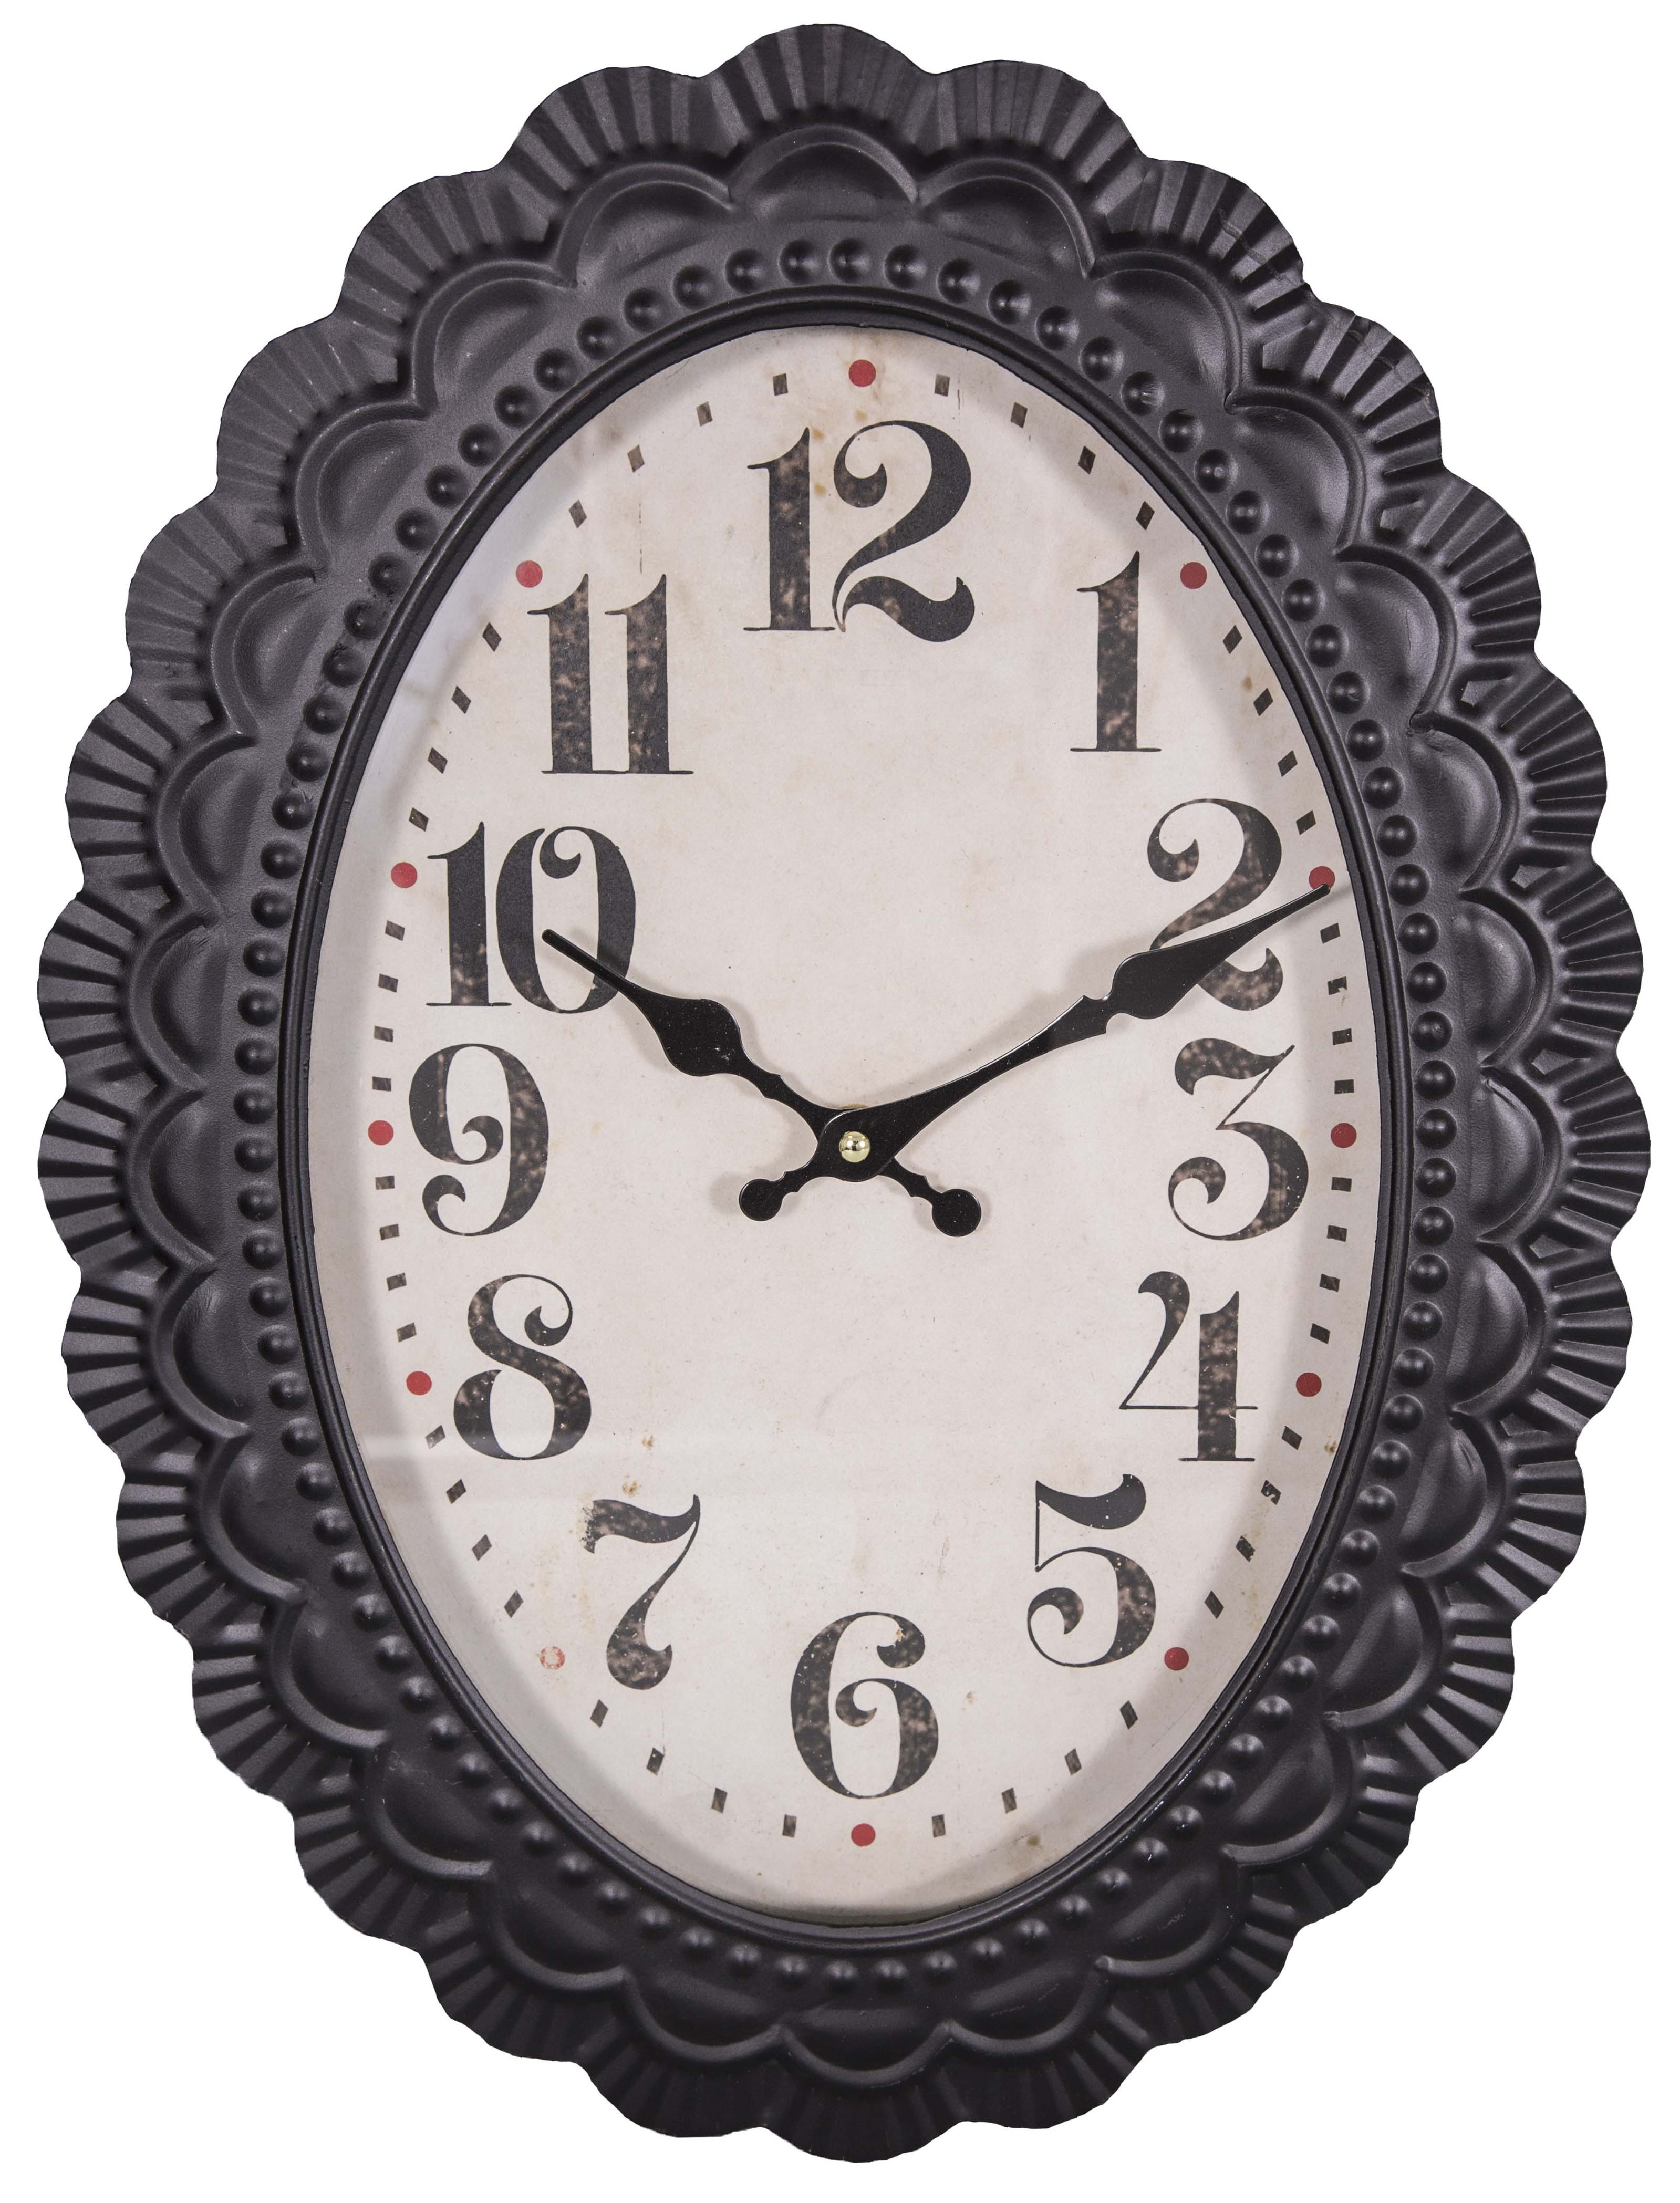 Oval wall clock old style by antic line ideal for a vintage decor